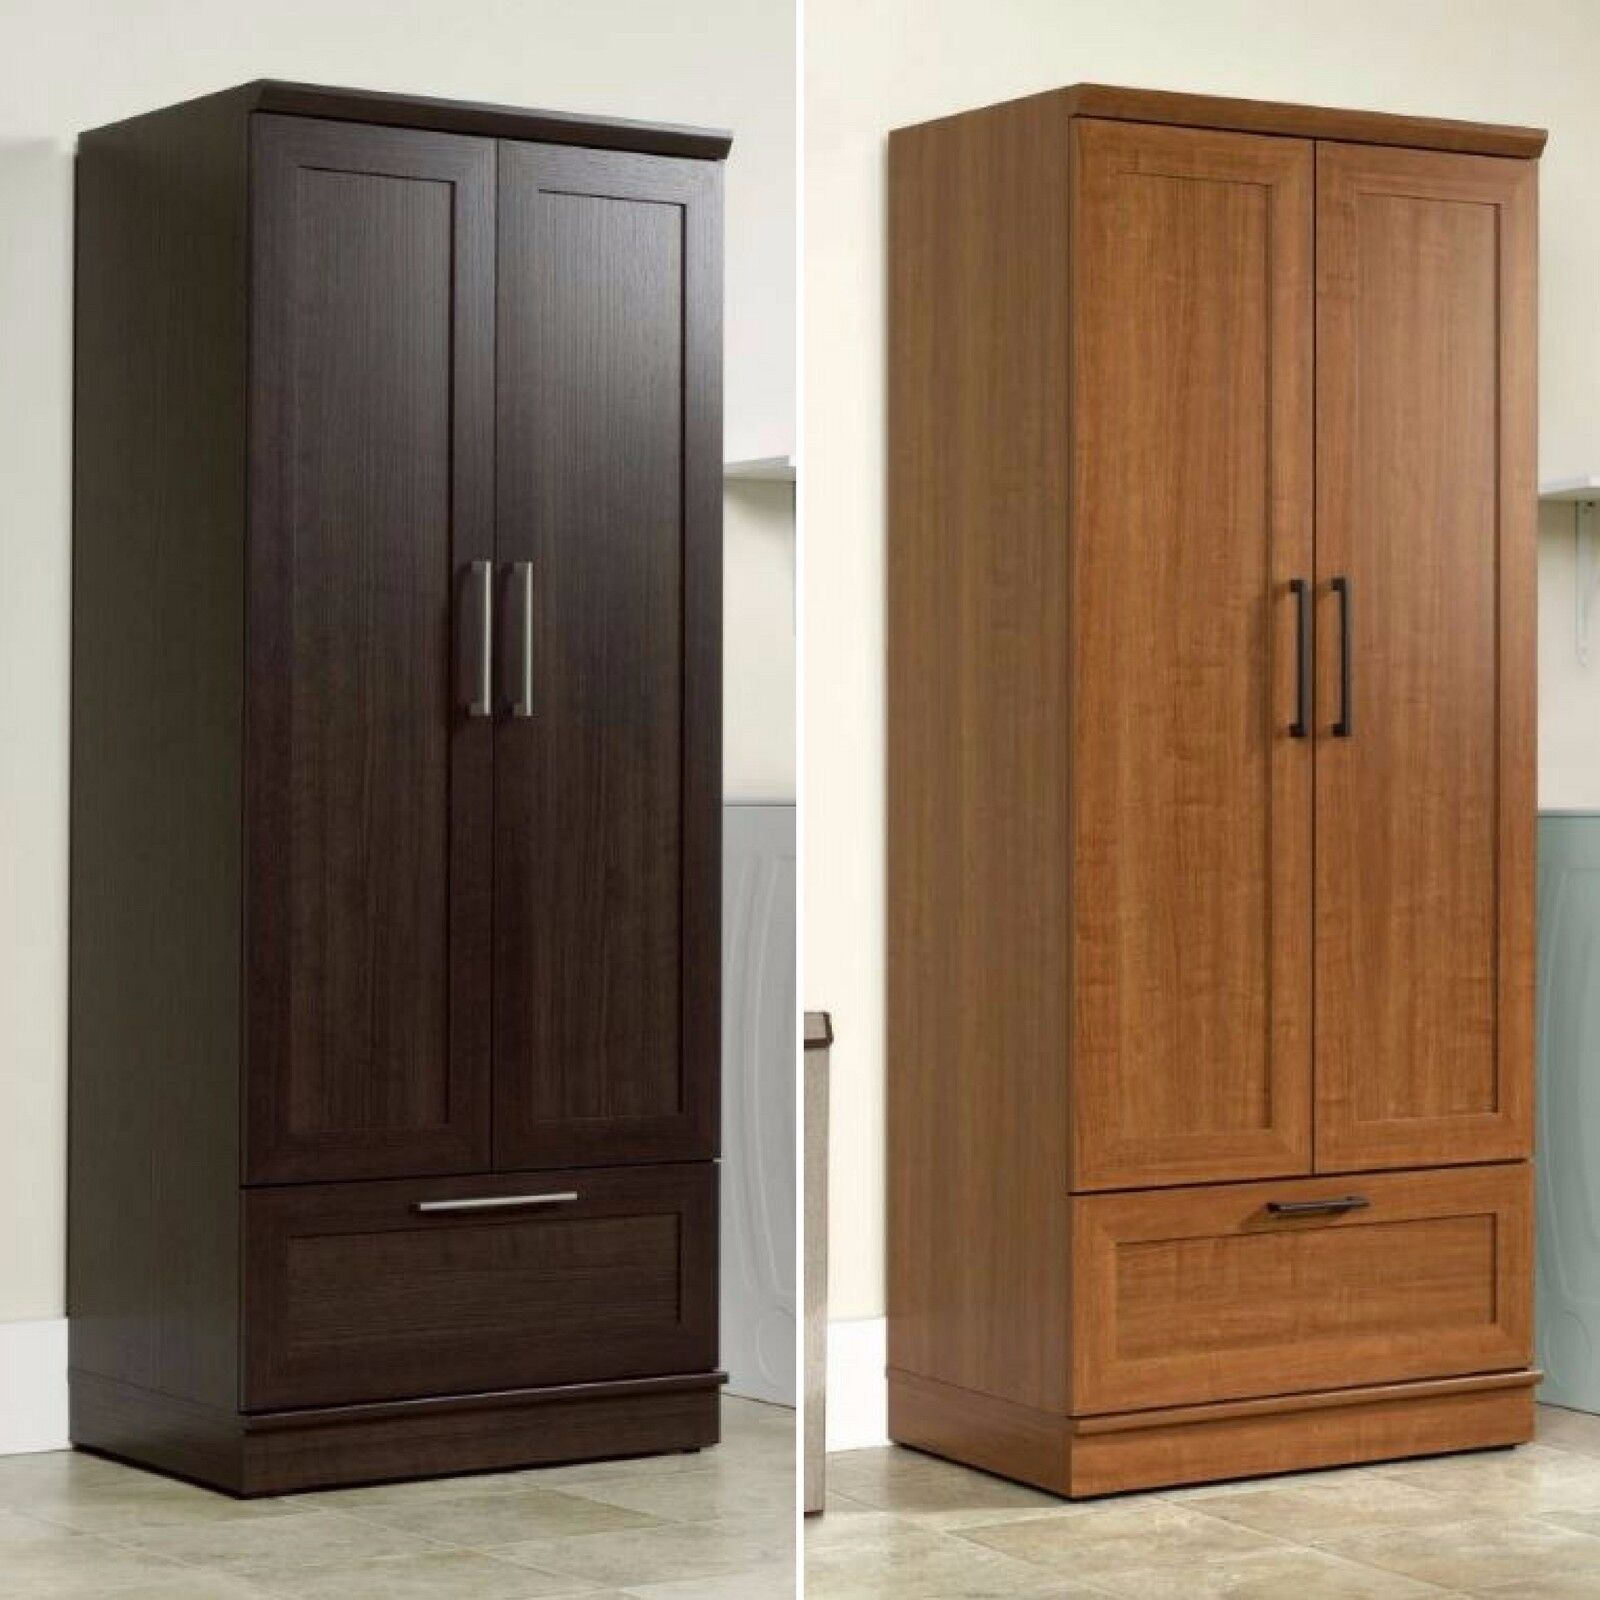 Armoire Wardrobe   Wardrobe Closet Storage Armoire Tall Bedroom Furniture  Cabinet Clothes Organizer